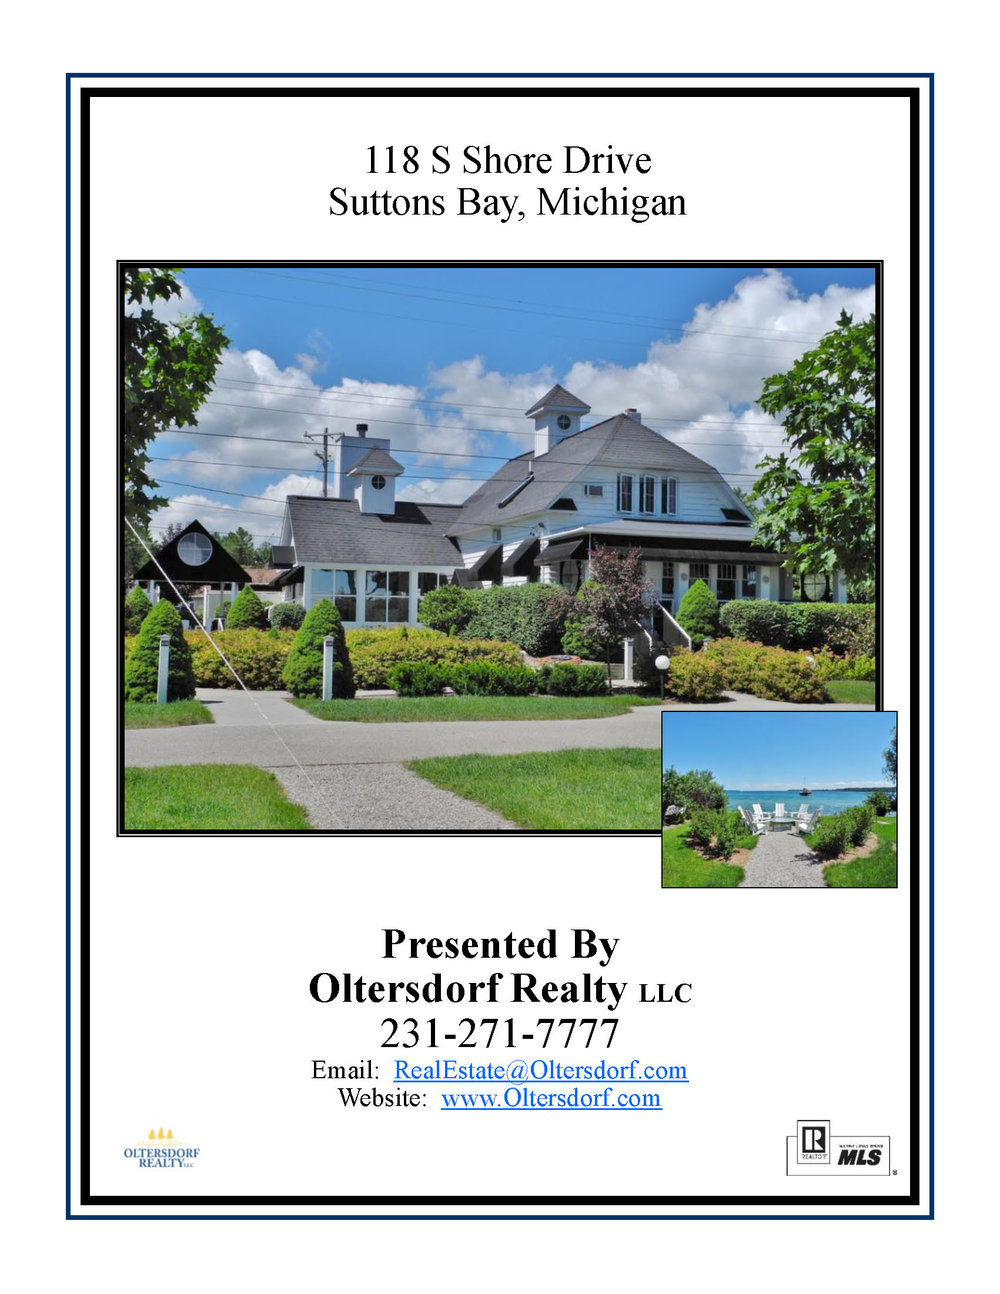 118 S Shore Drive, Suttons Bay, For Sale By Oltersdorf Realty - Marketing Packet (1).jpg